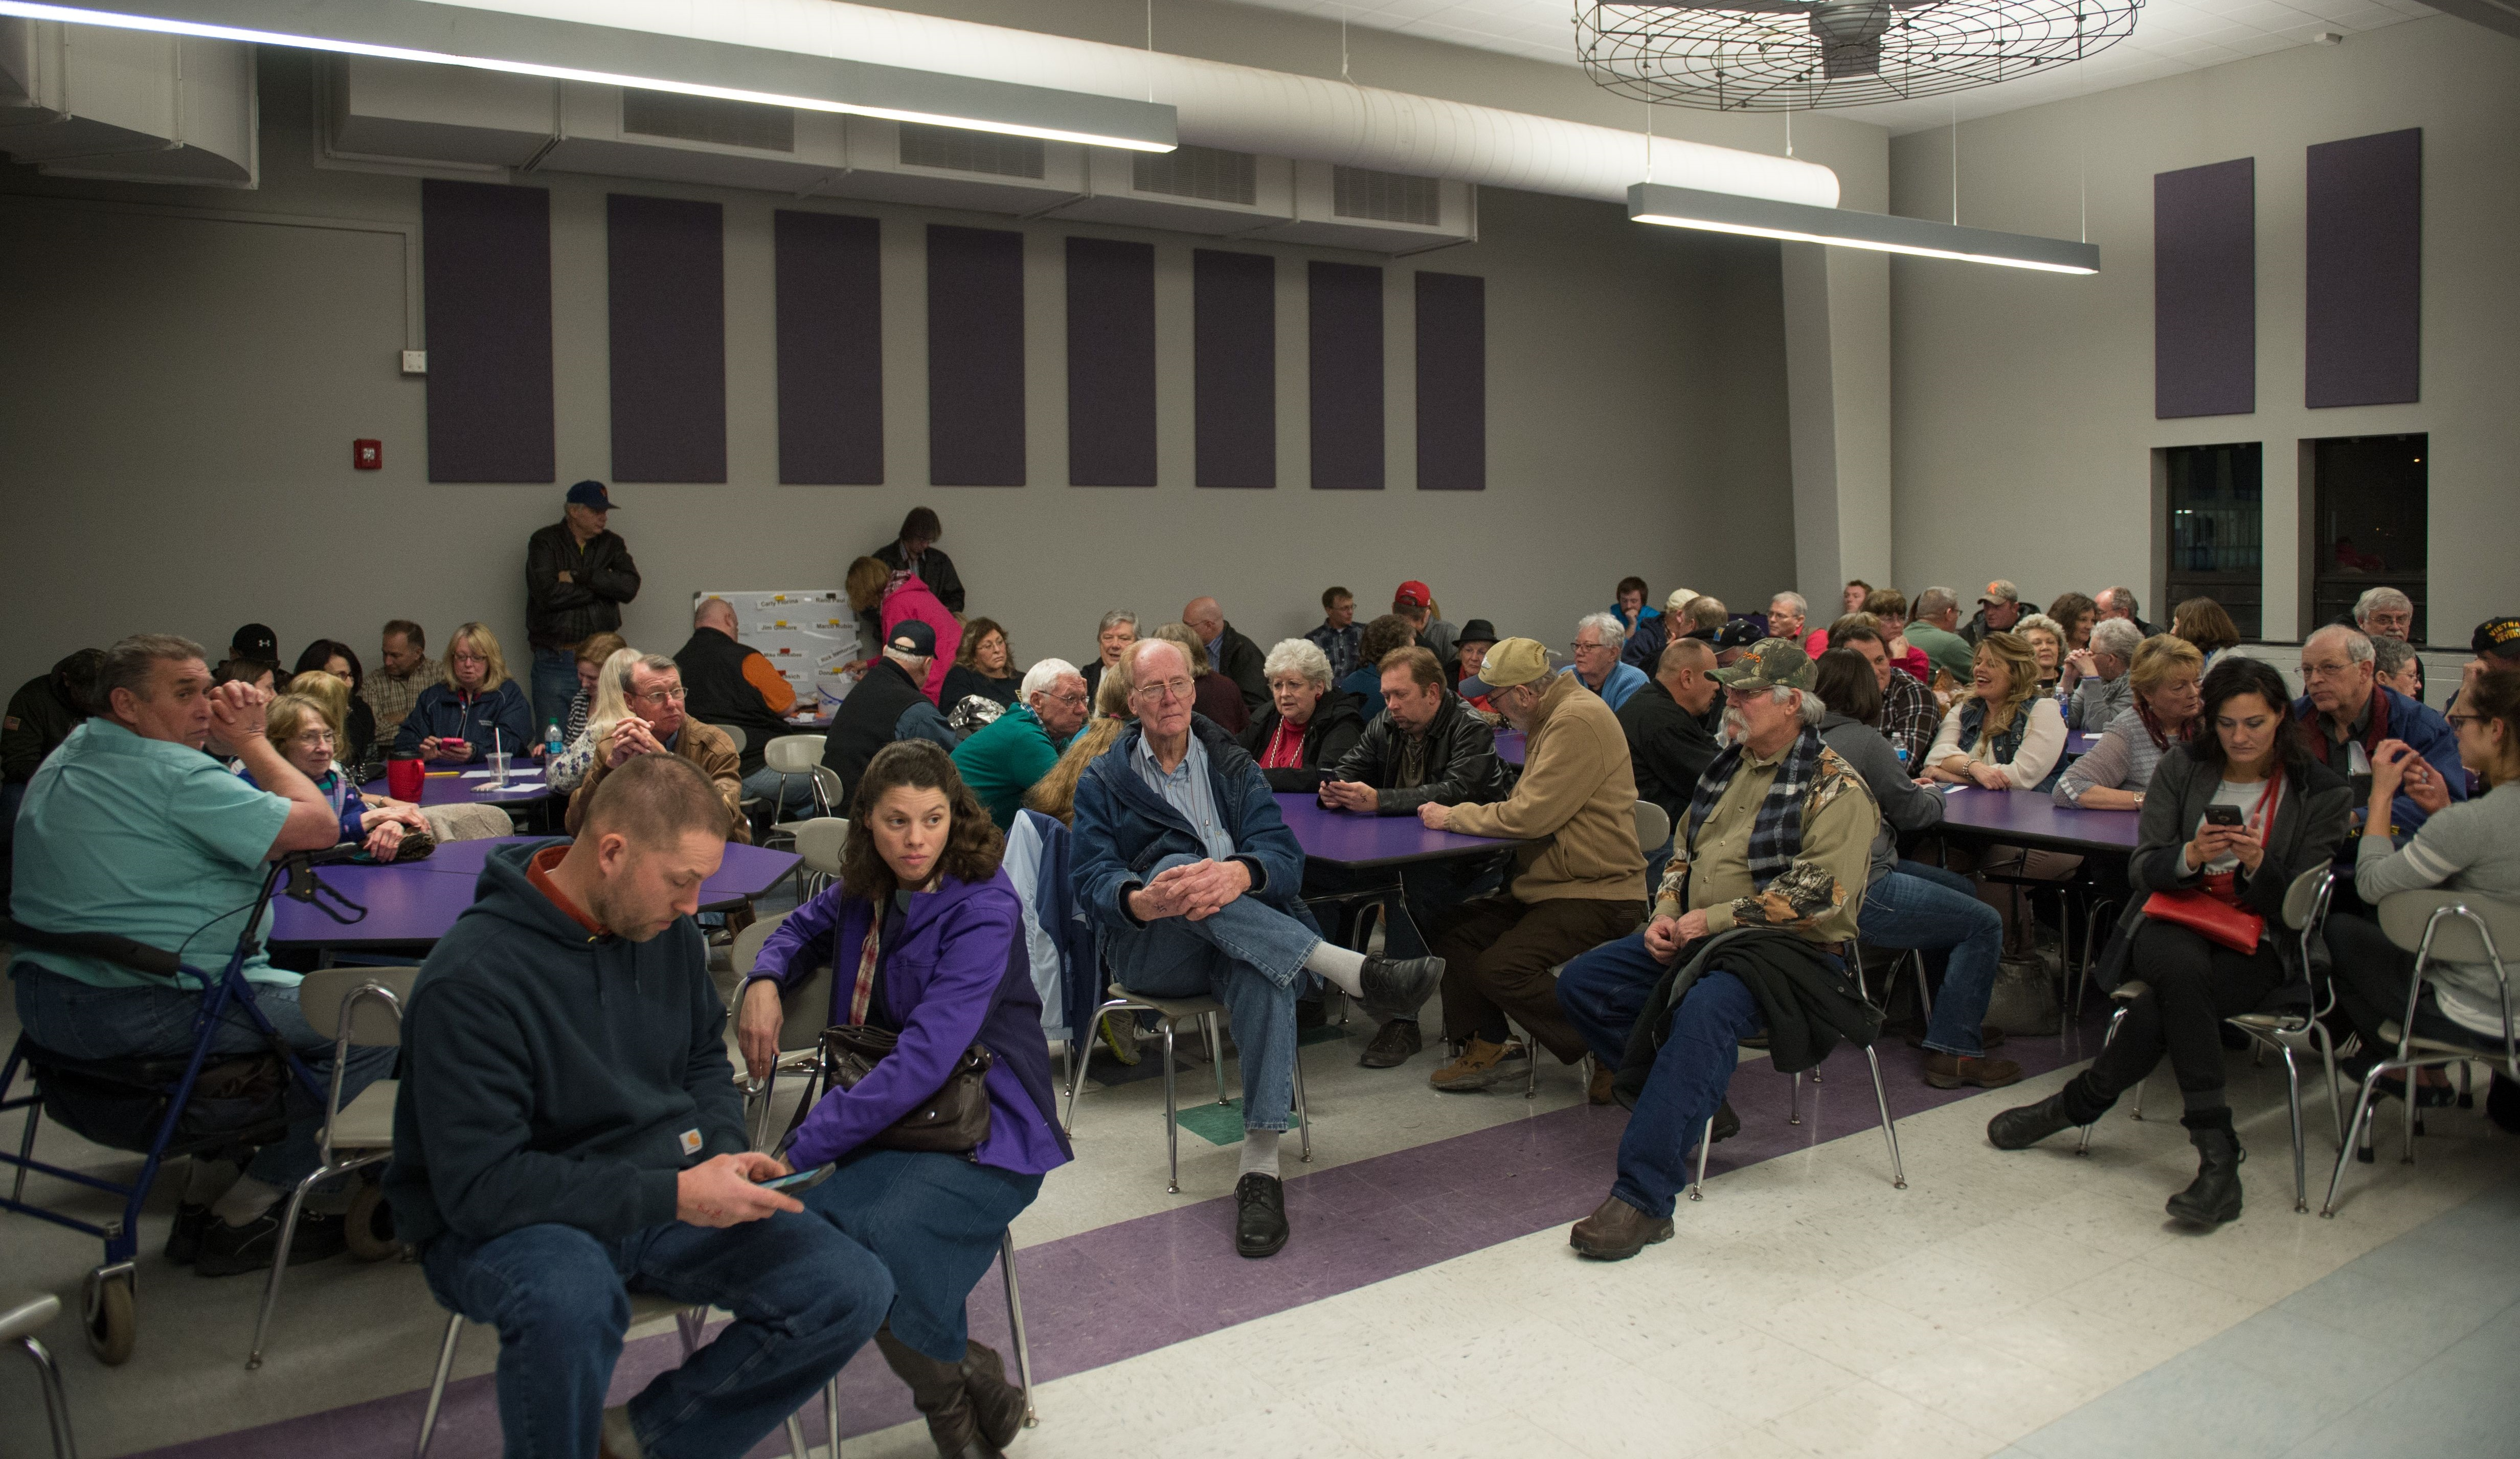 Both parties expect smaller crowds in Colorado caucuses